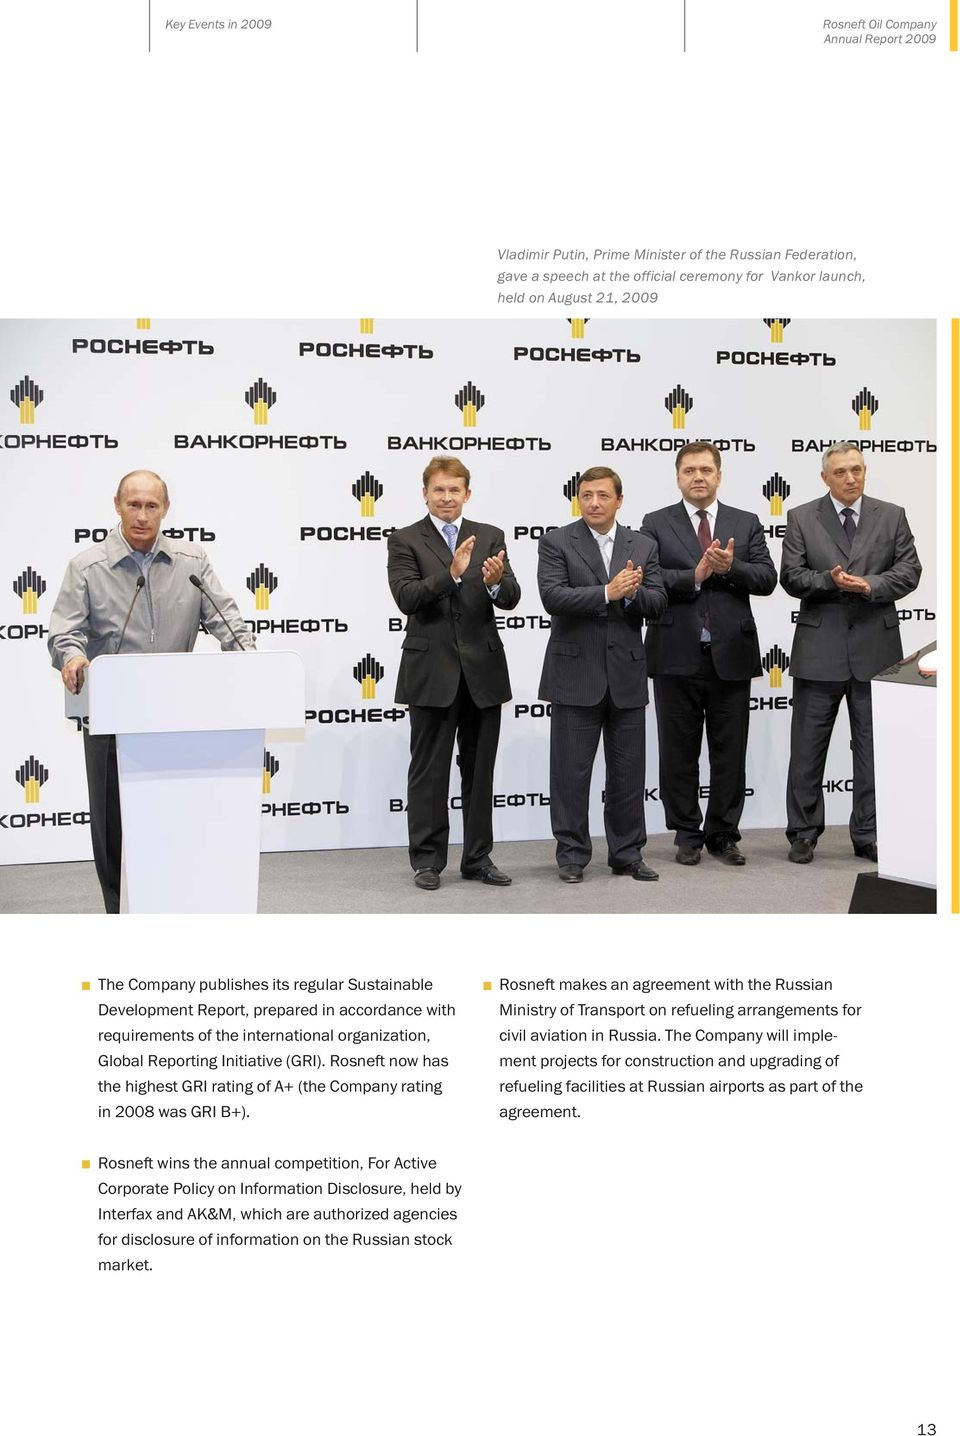 Rosneft now has the highest GRI rating of A+ (the Company rating in 2008 was GRI B+).